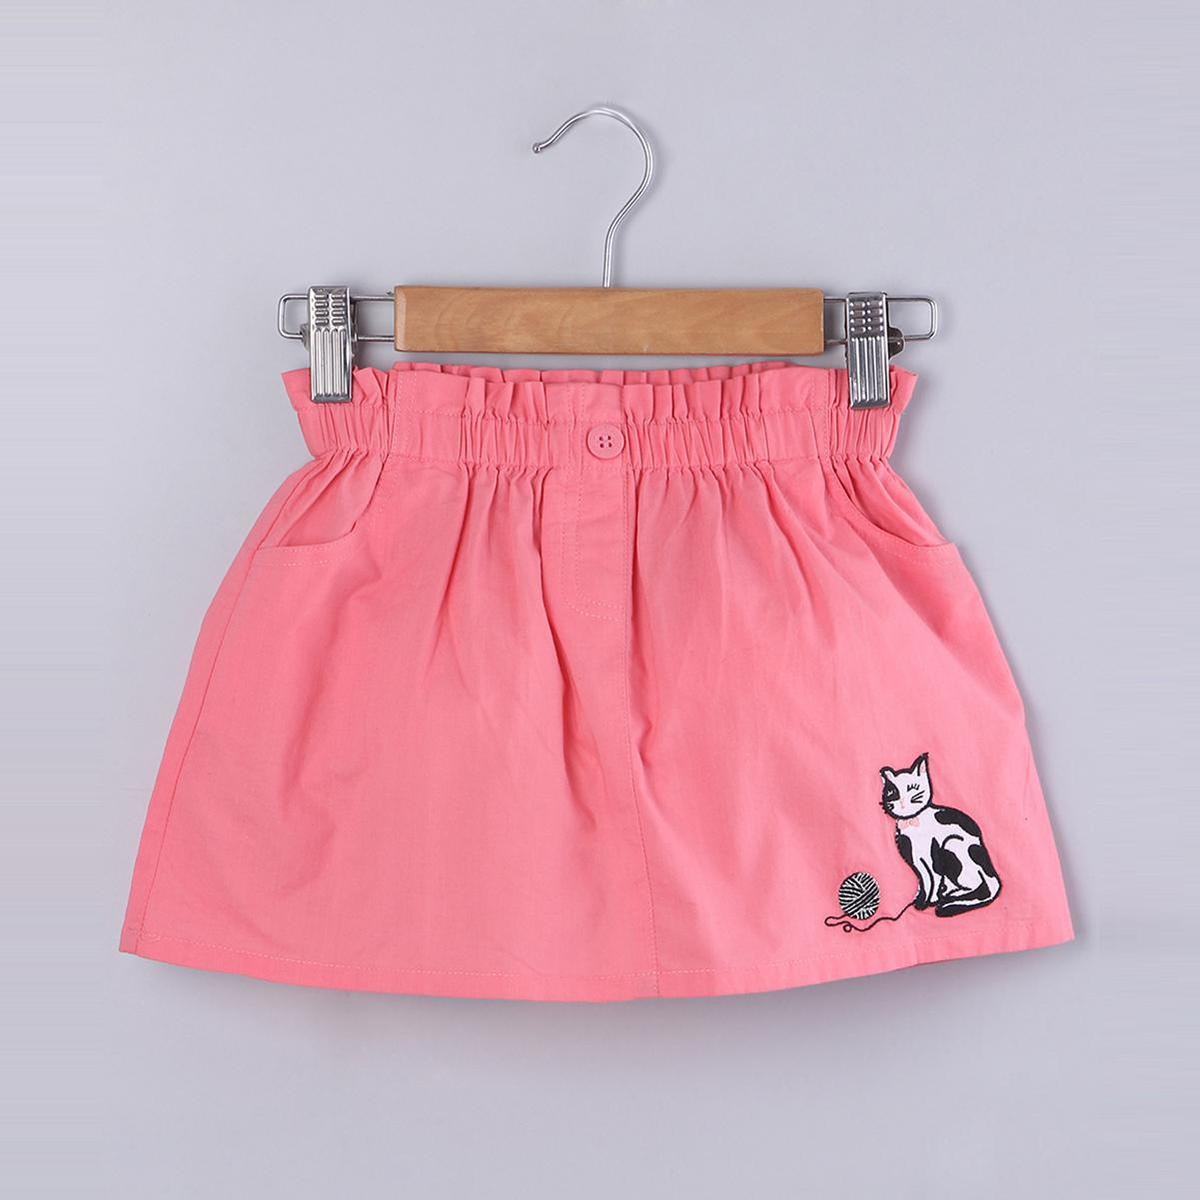 Beebay - Peperbag Applique Embroidered Skirt- Pink